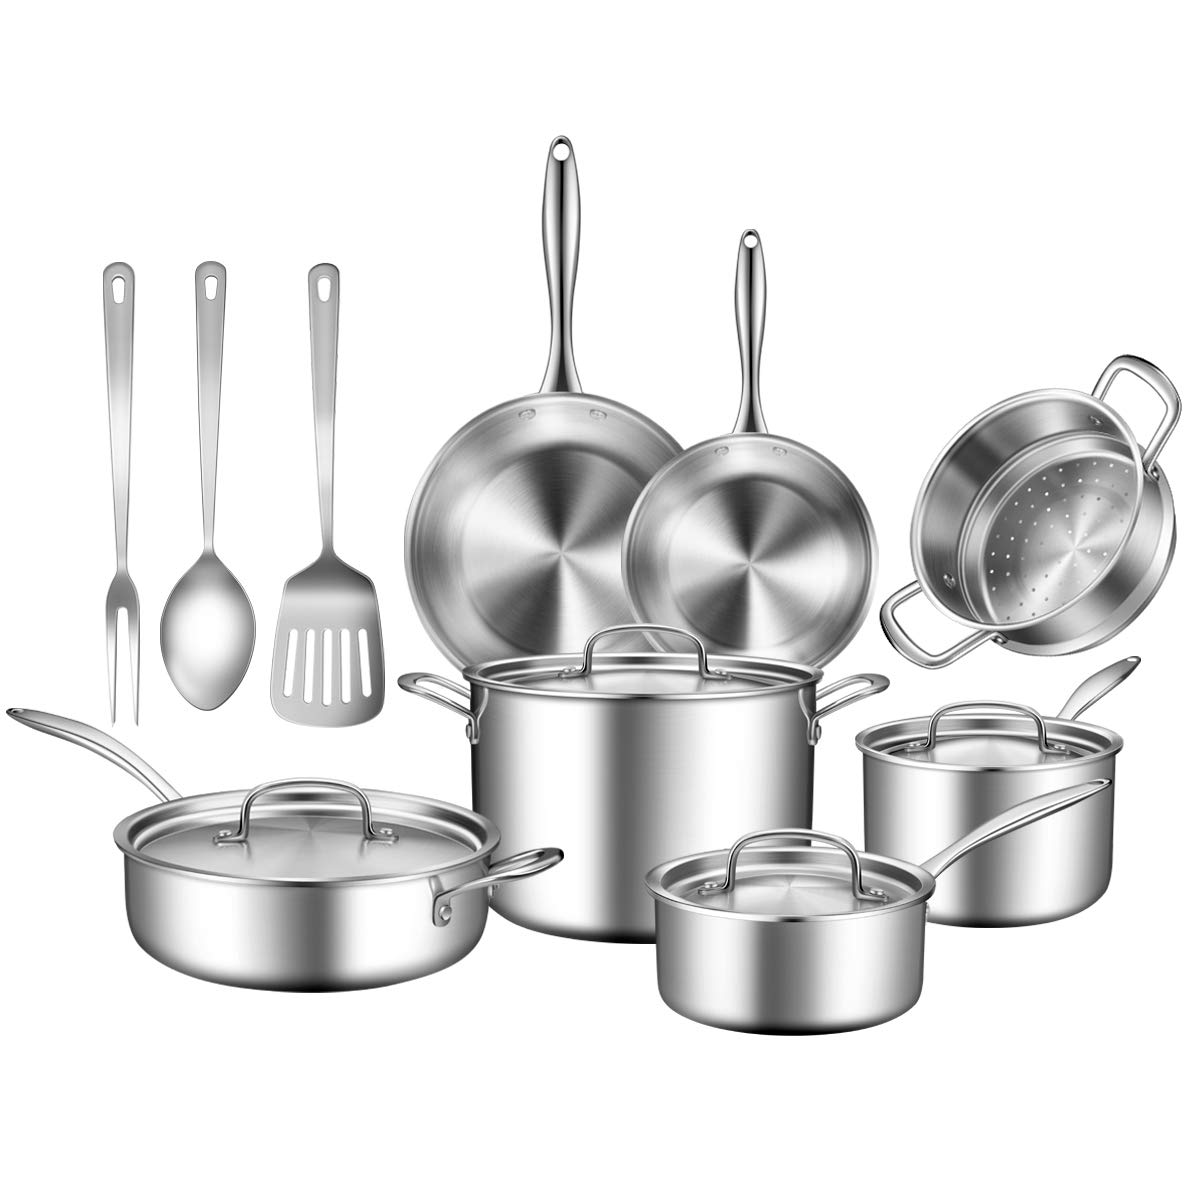 Stainless Steel Cookware Set, 14 Piece Triple Ply Cookware Set Professional Grade Pots and Pans Set, Induction Ready/Toxin Free/Dishwasher&Oven Safe, Silver